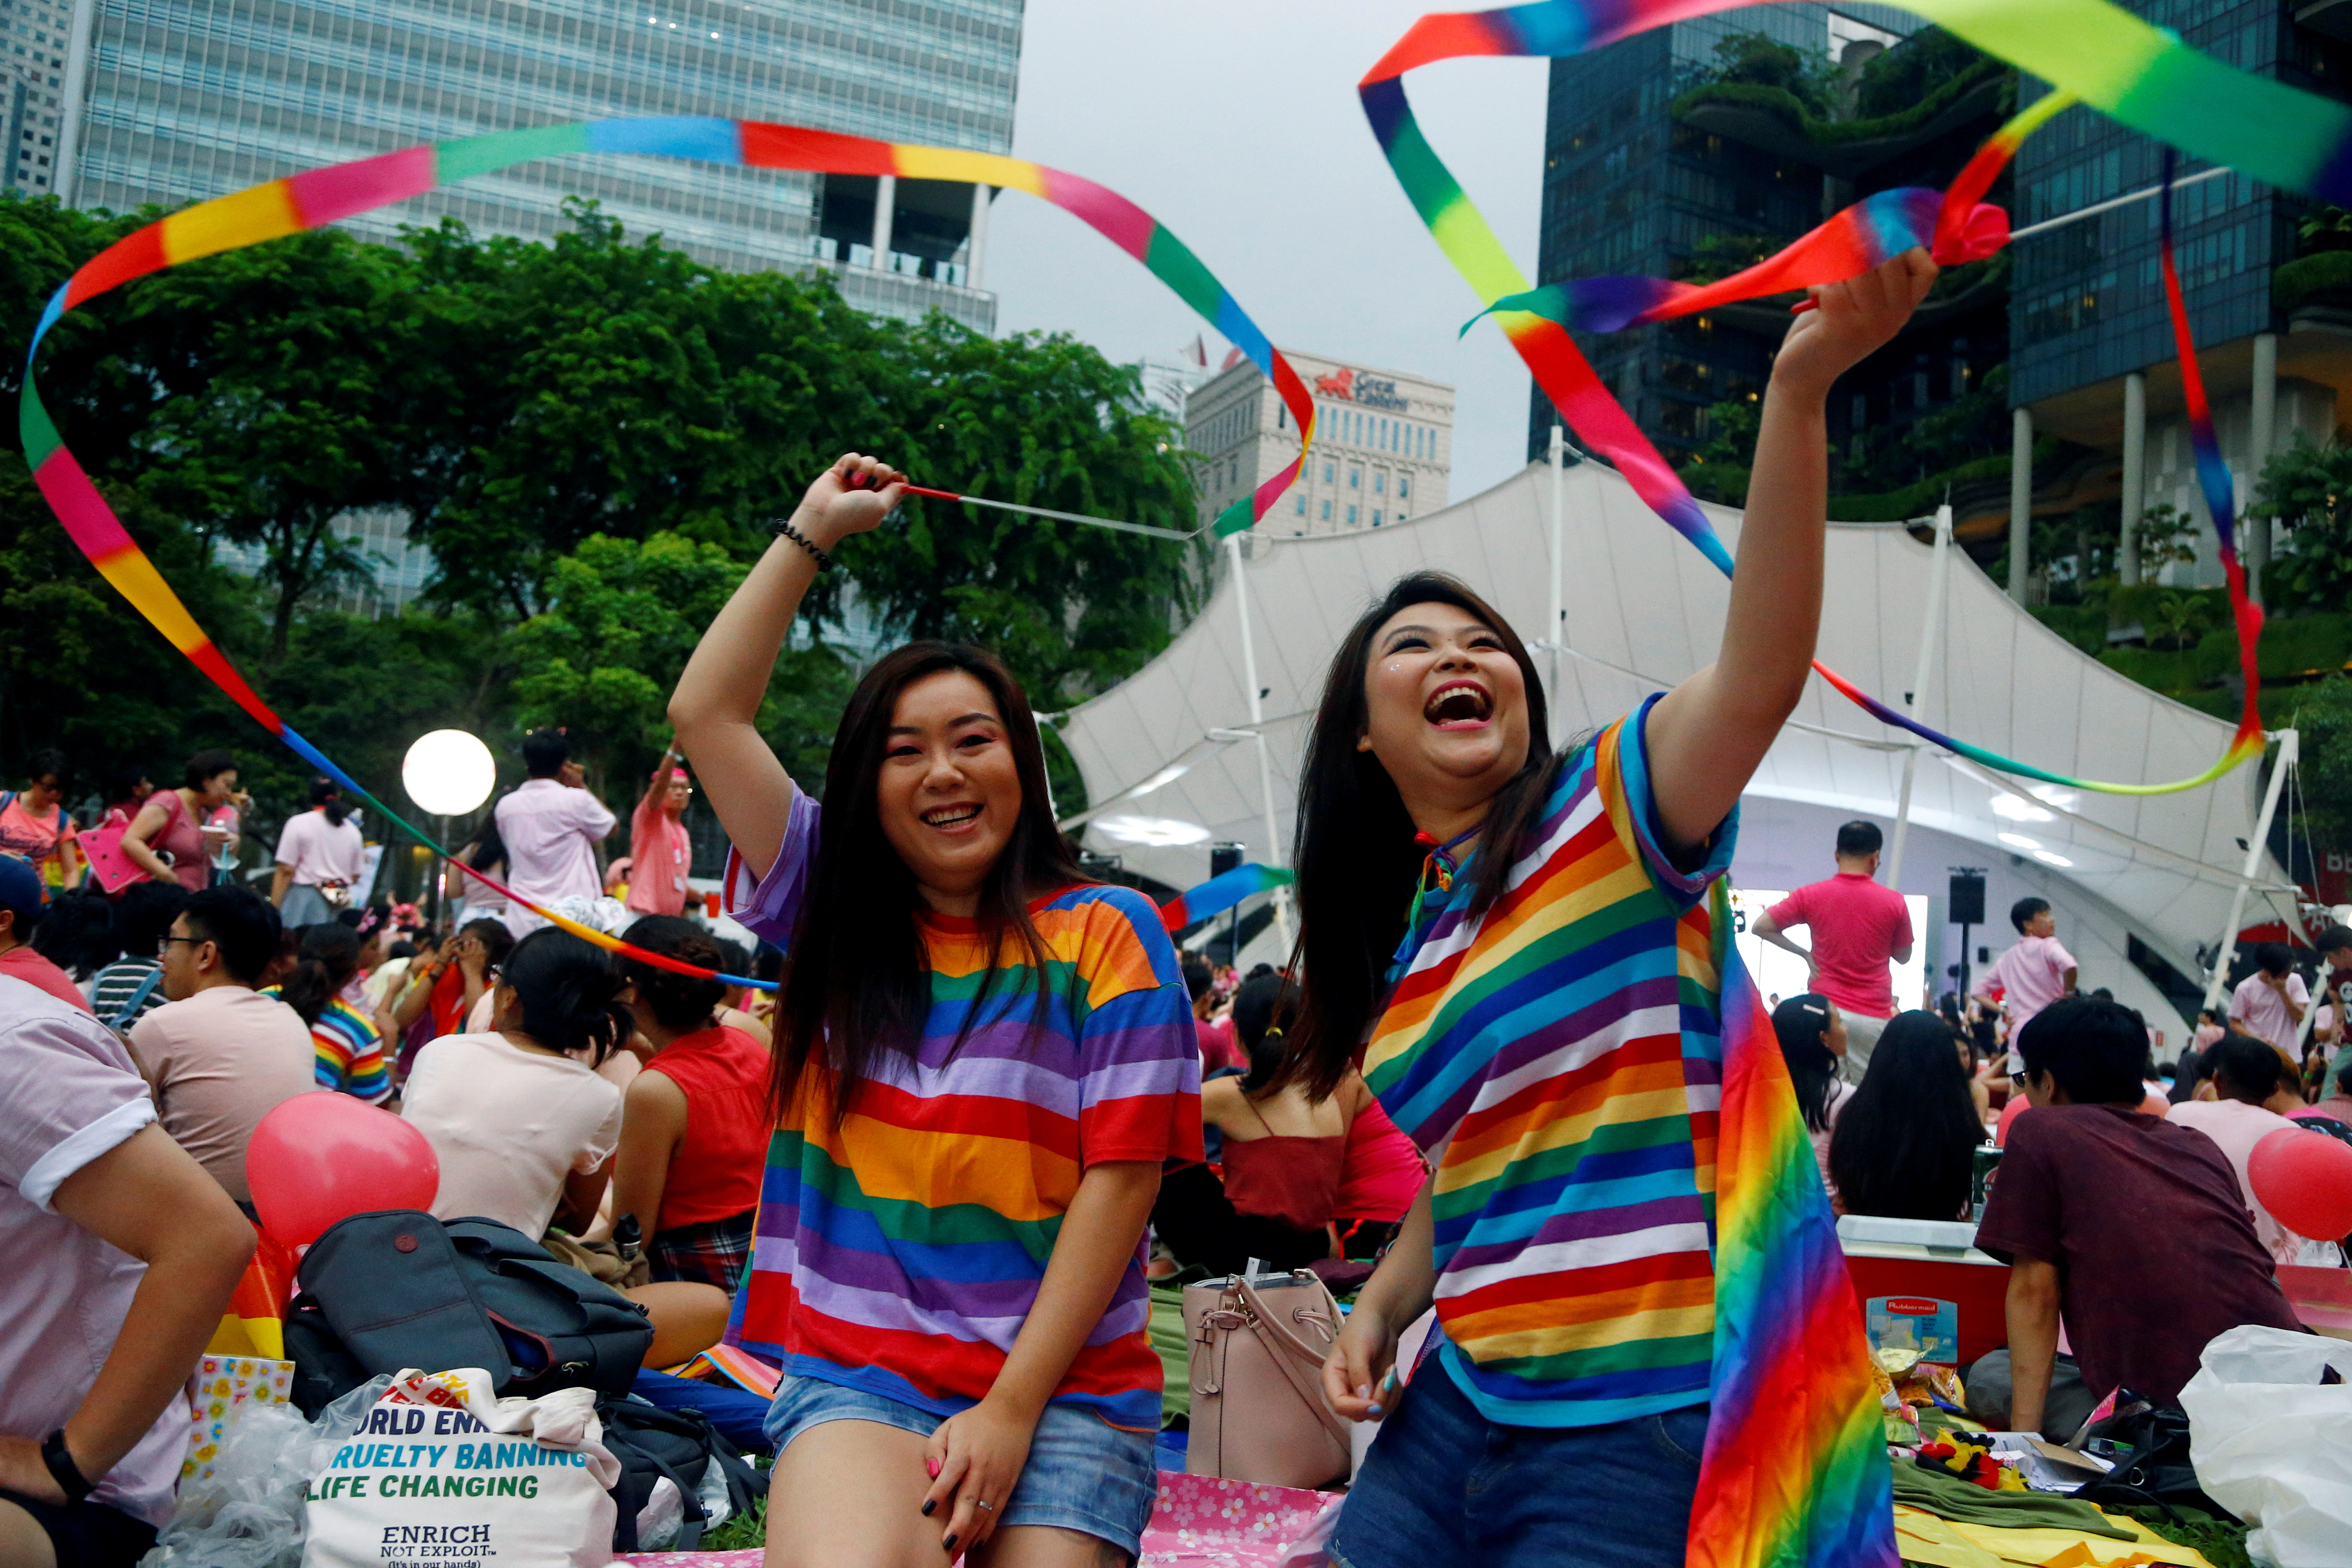 Participants of Pink Dot, an annual event organised in support of the LGBT community, pose for a photo at the Speakers' Corner in Hong Lim Park in Singapore, June 29, 2019. REUTERS/Feline Lim